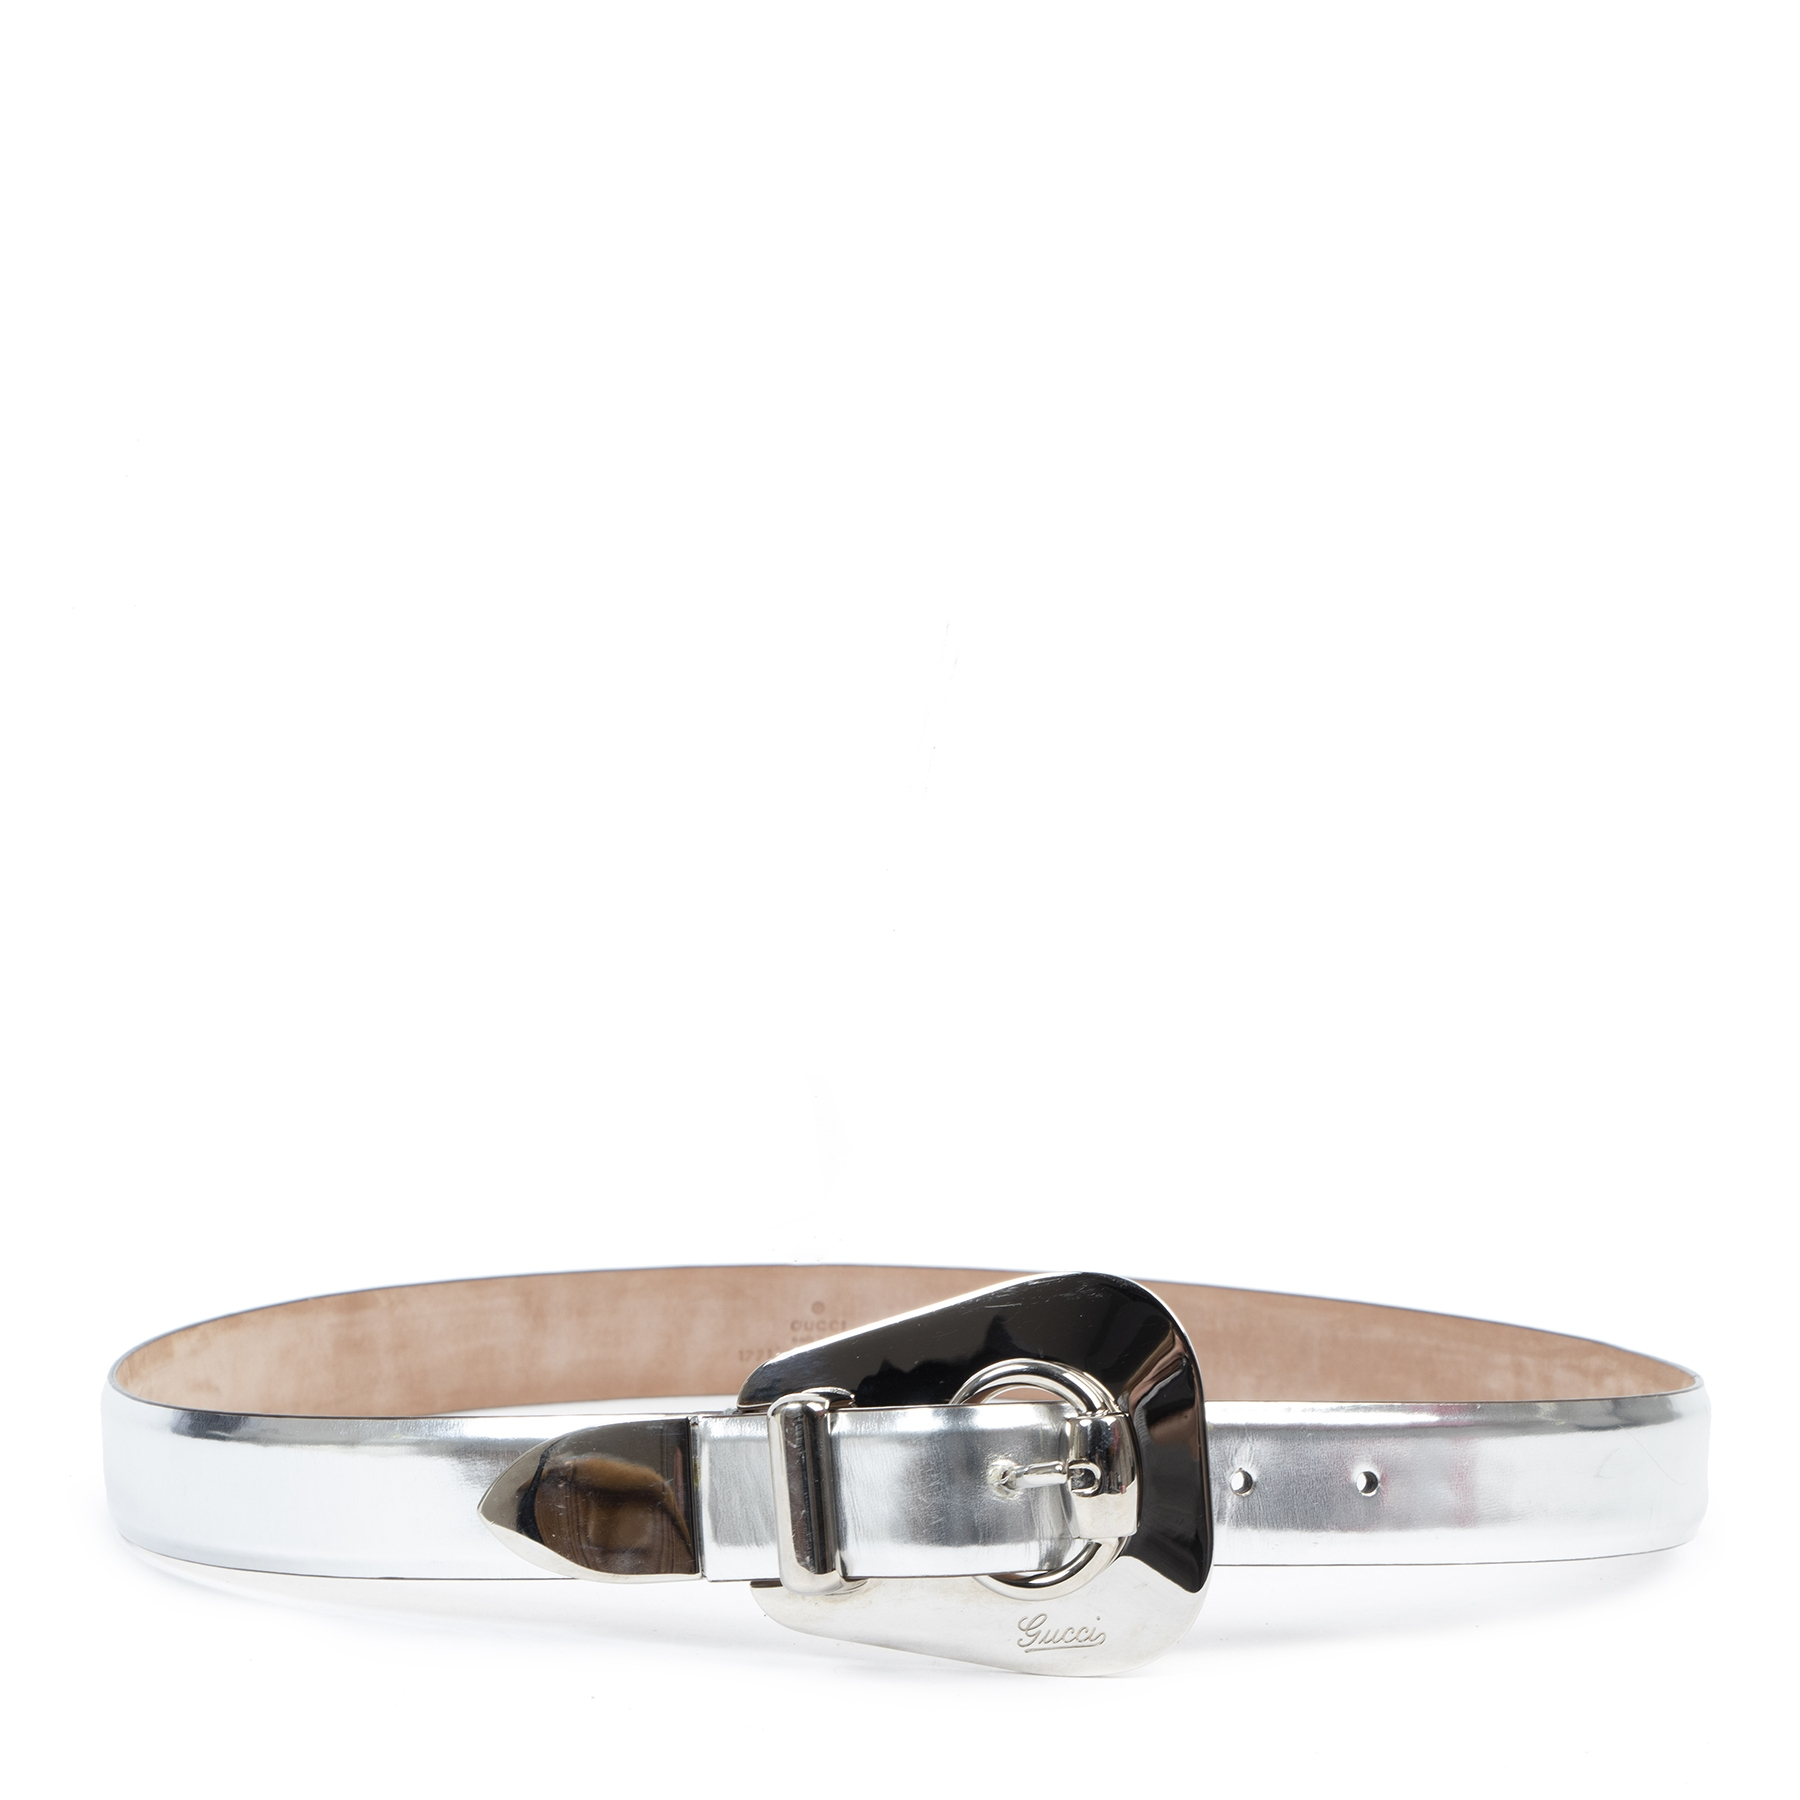 Authentic secondhand Gucci Silver Metallic Leather Belt - Size 95 designer accessories fashion luxury vintage webshop safe secure online shopping